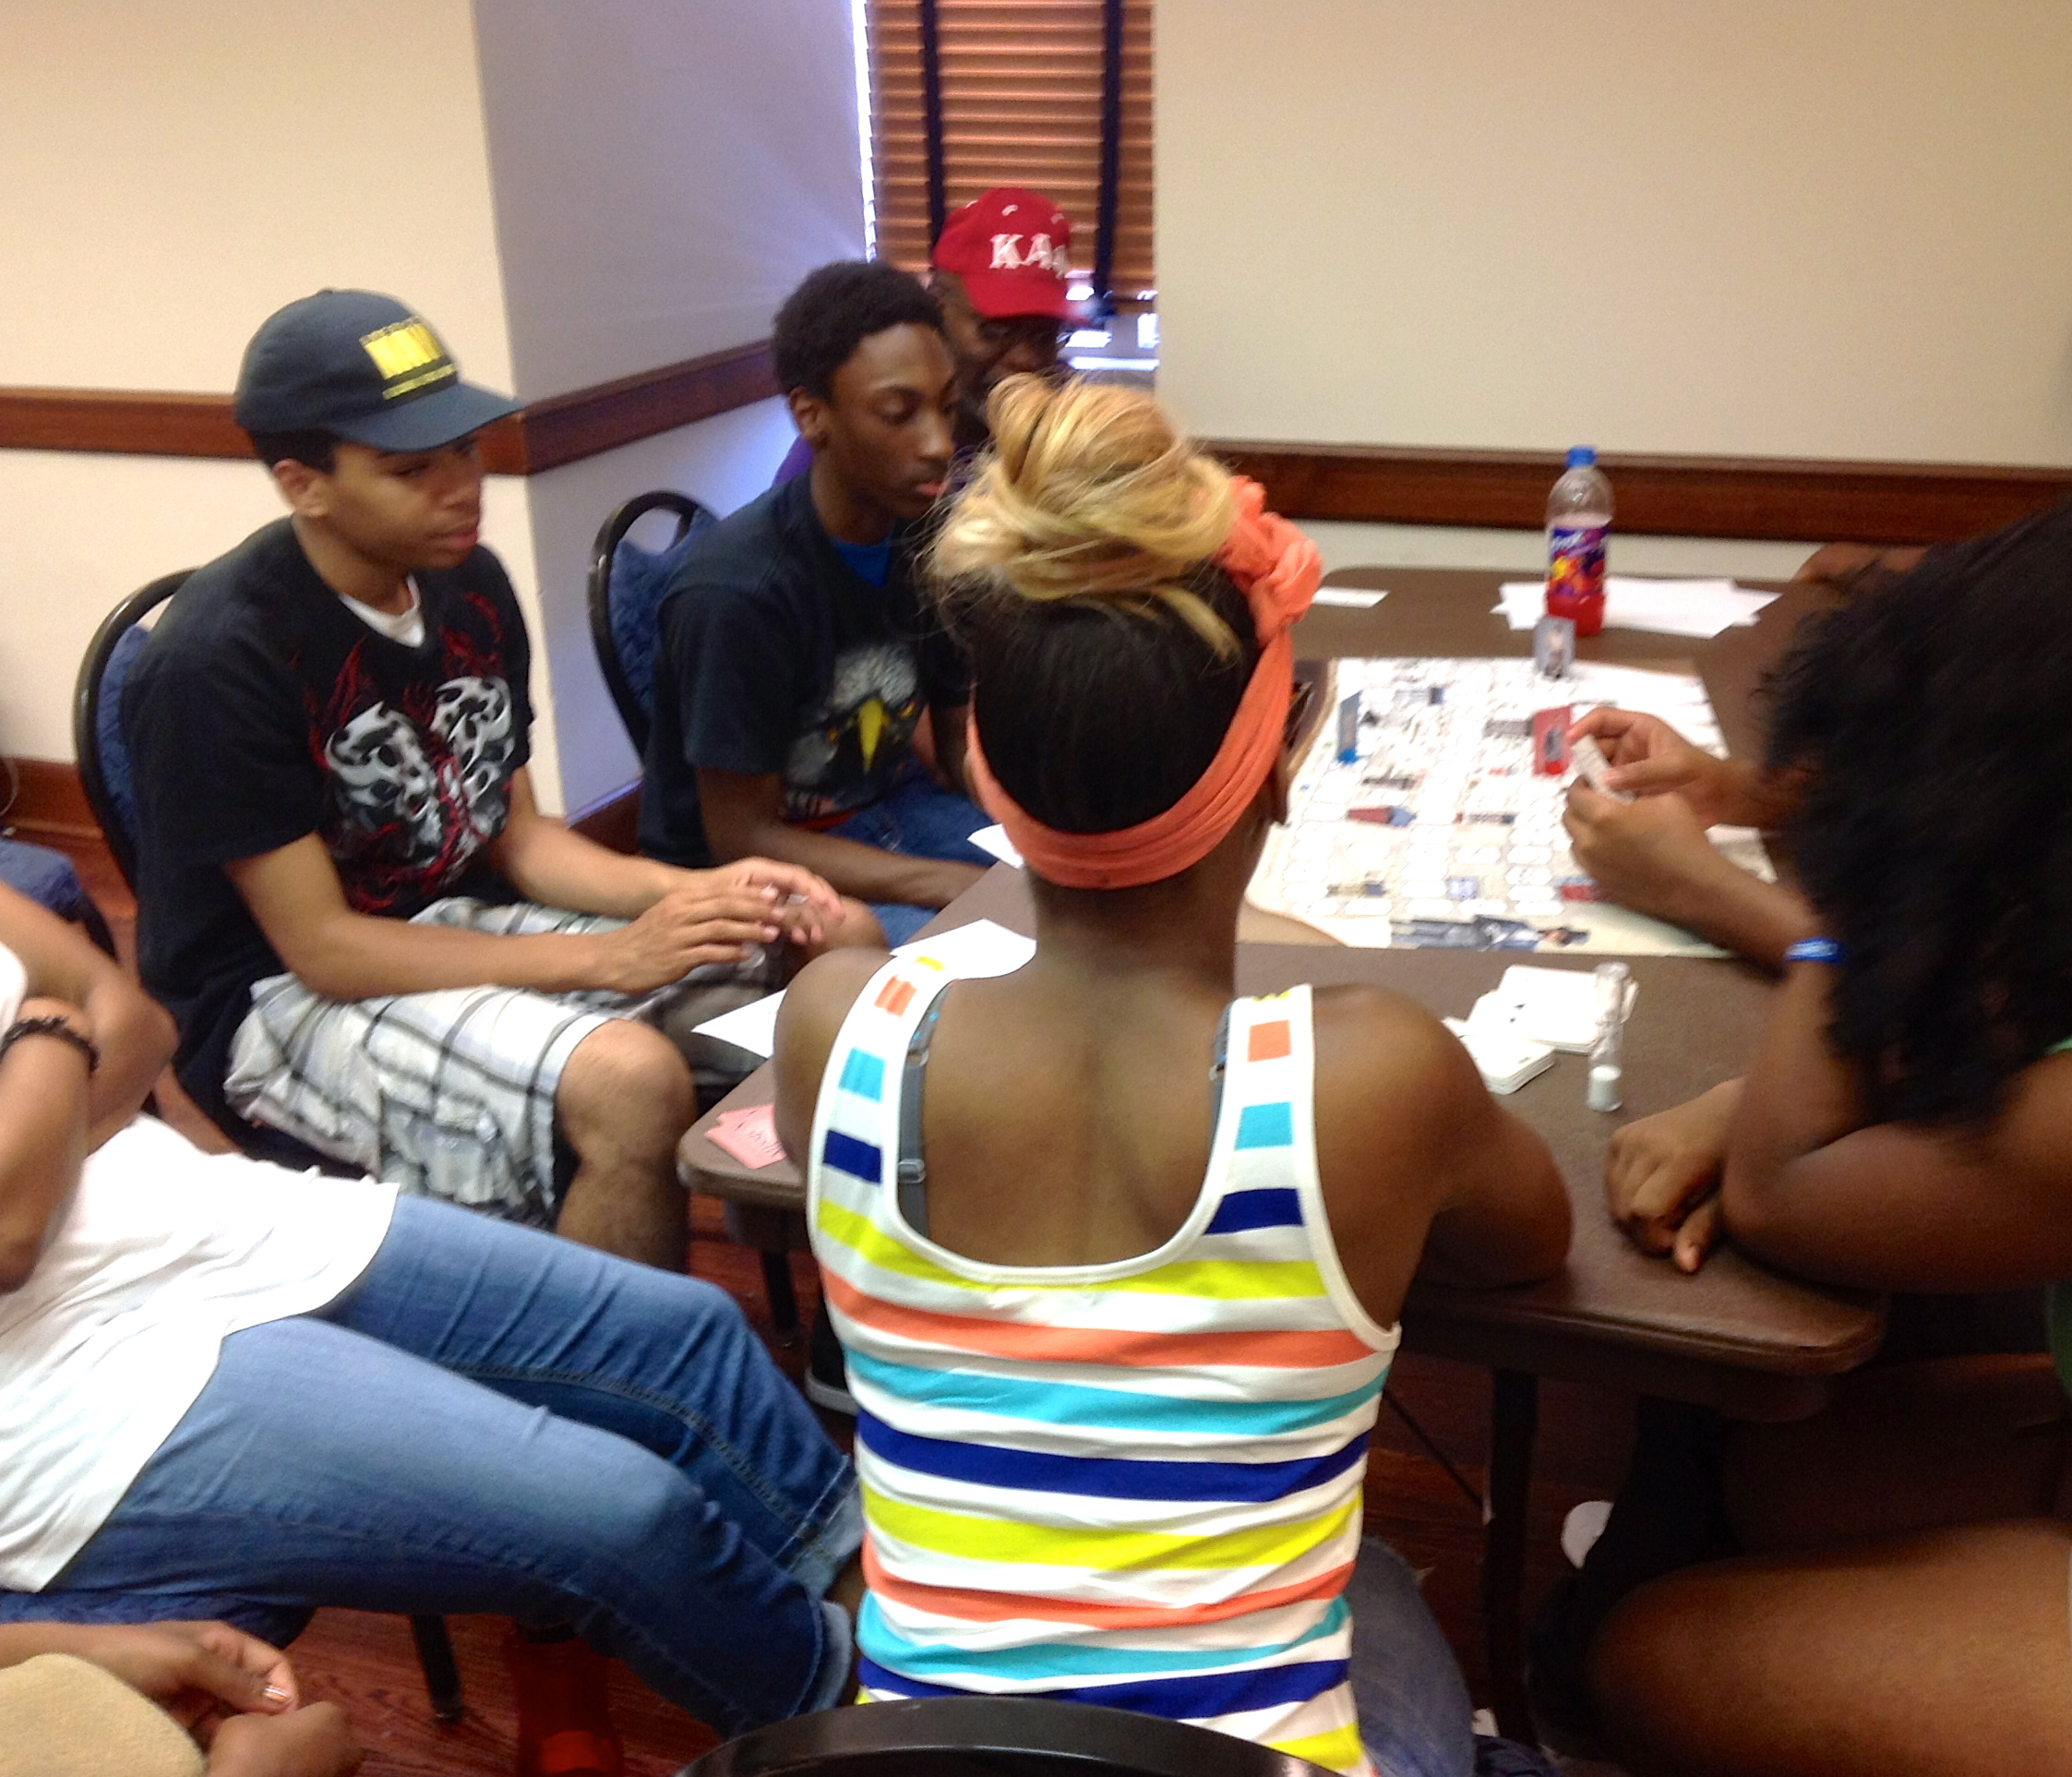 High school students from Homewood, Pittsburgh playing The Ward board game.